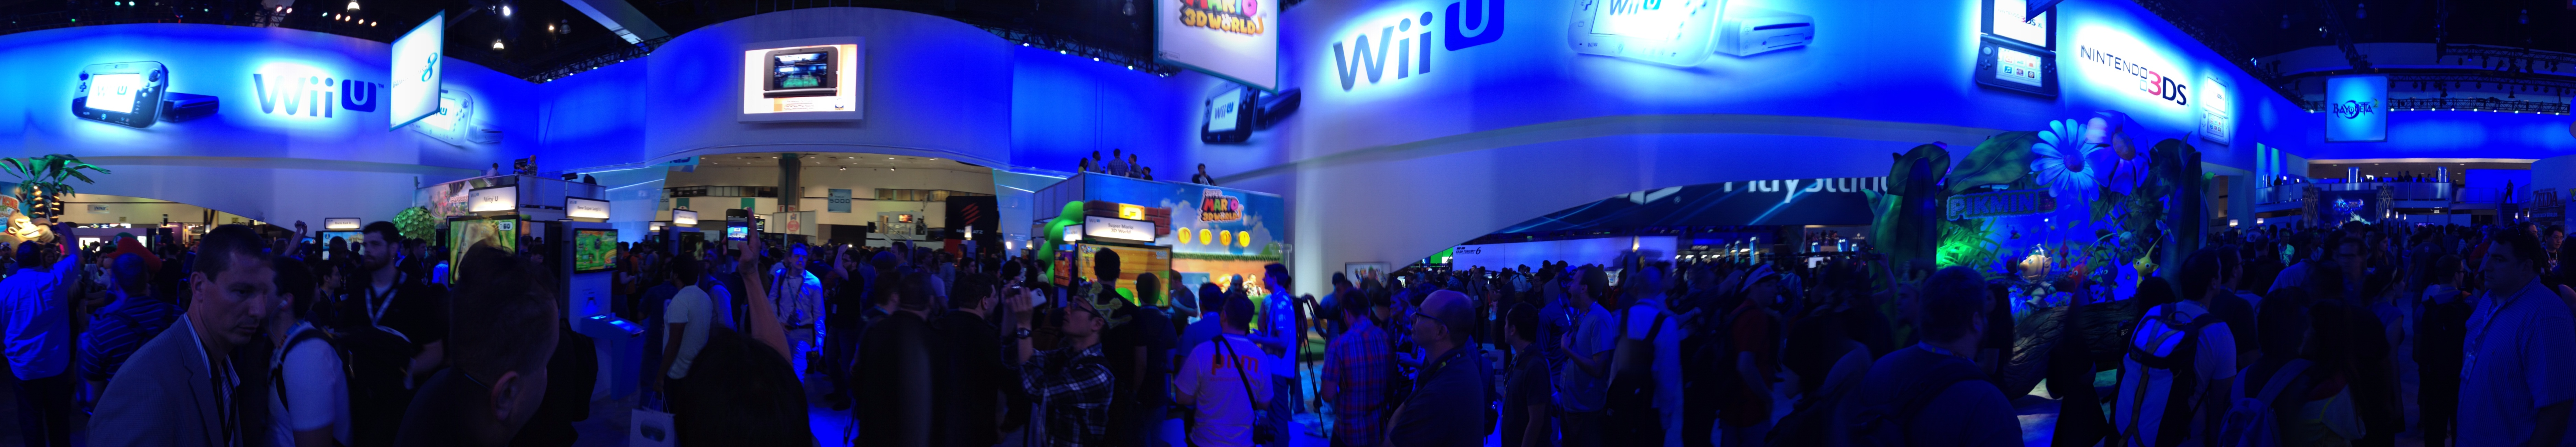 Panorama of the E3 Show floor